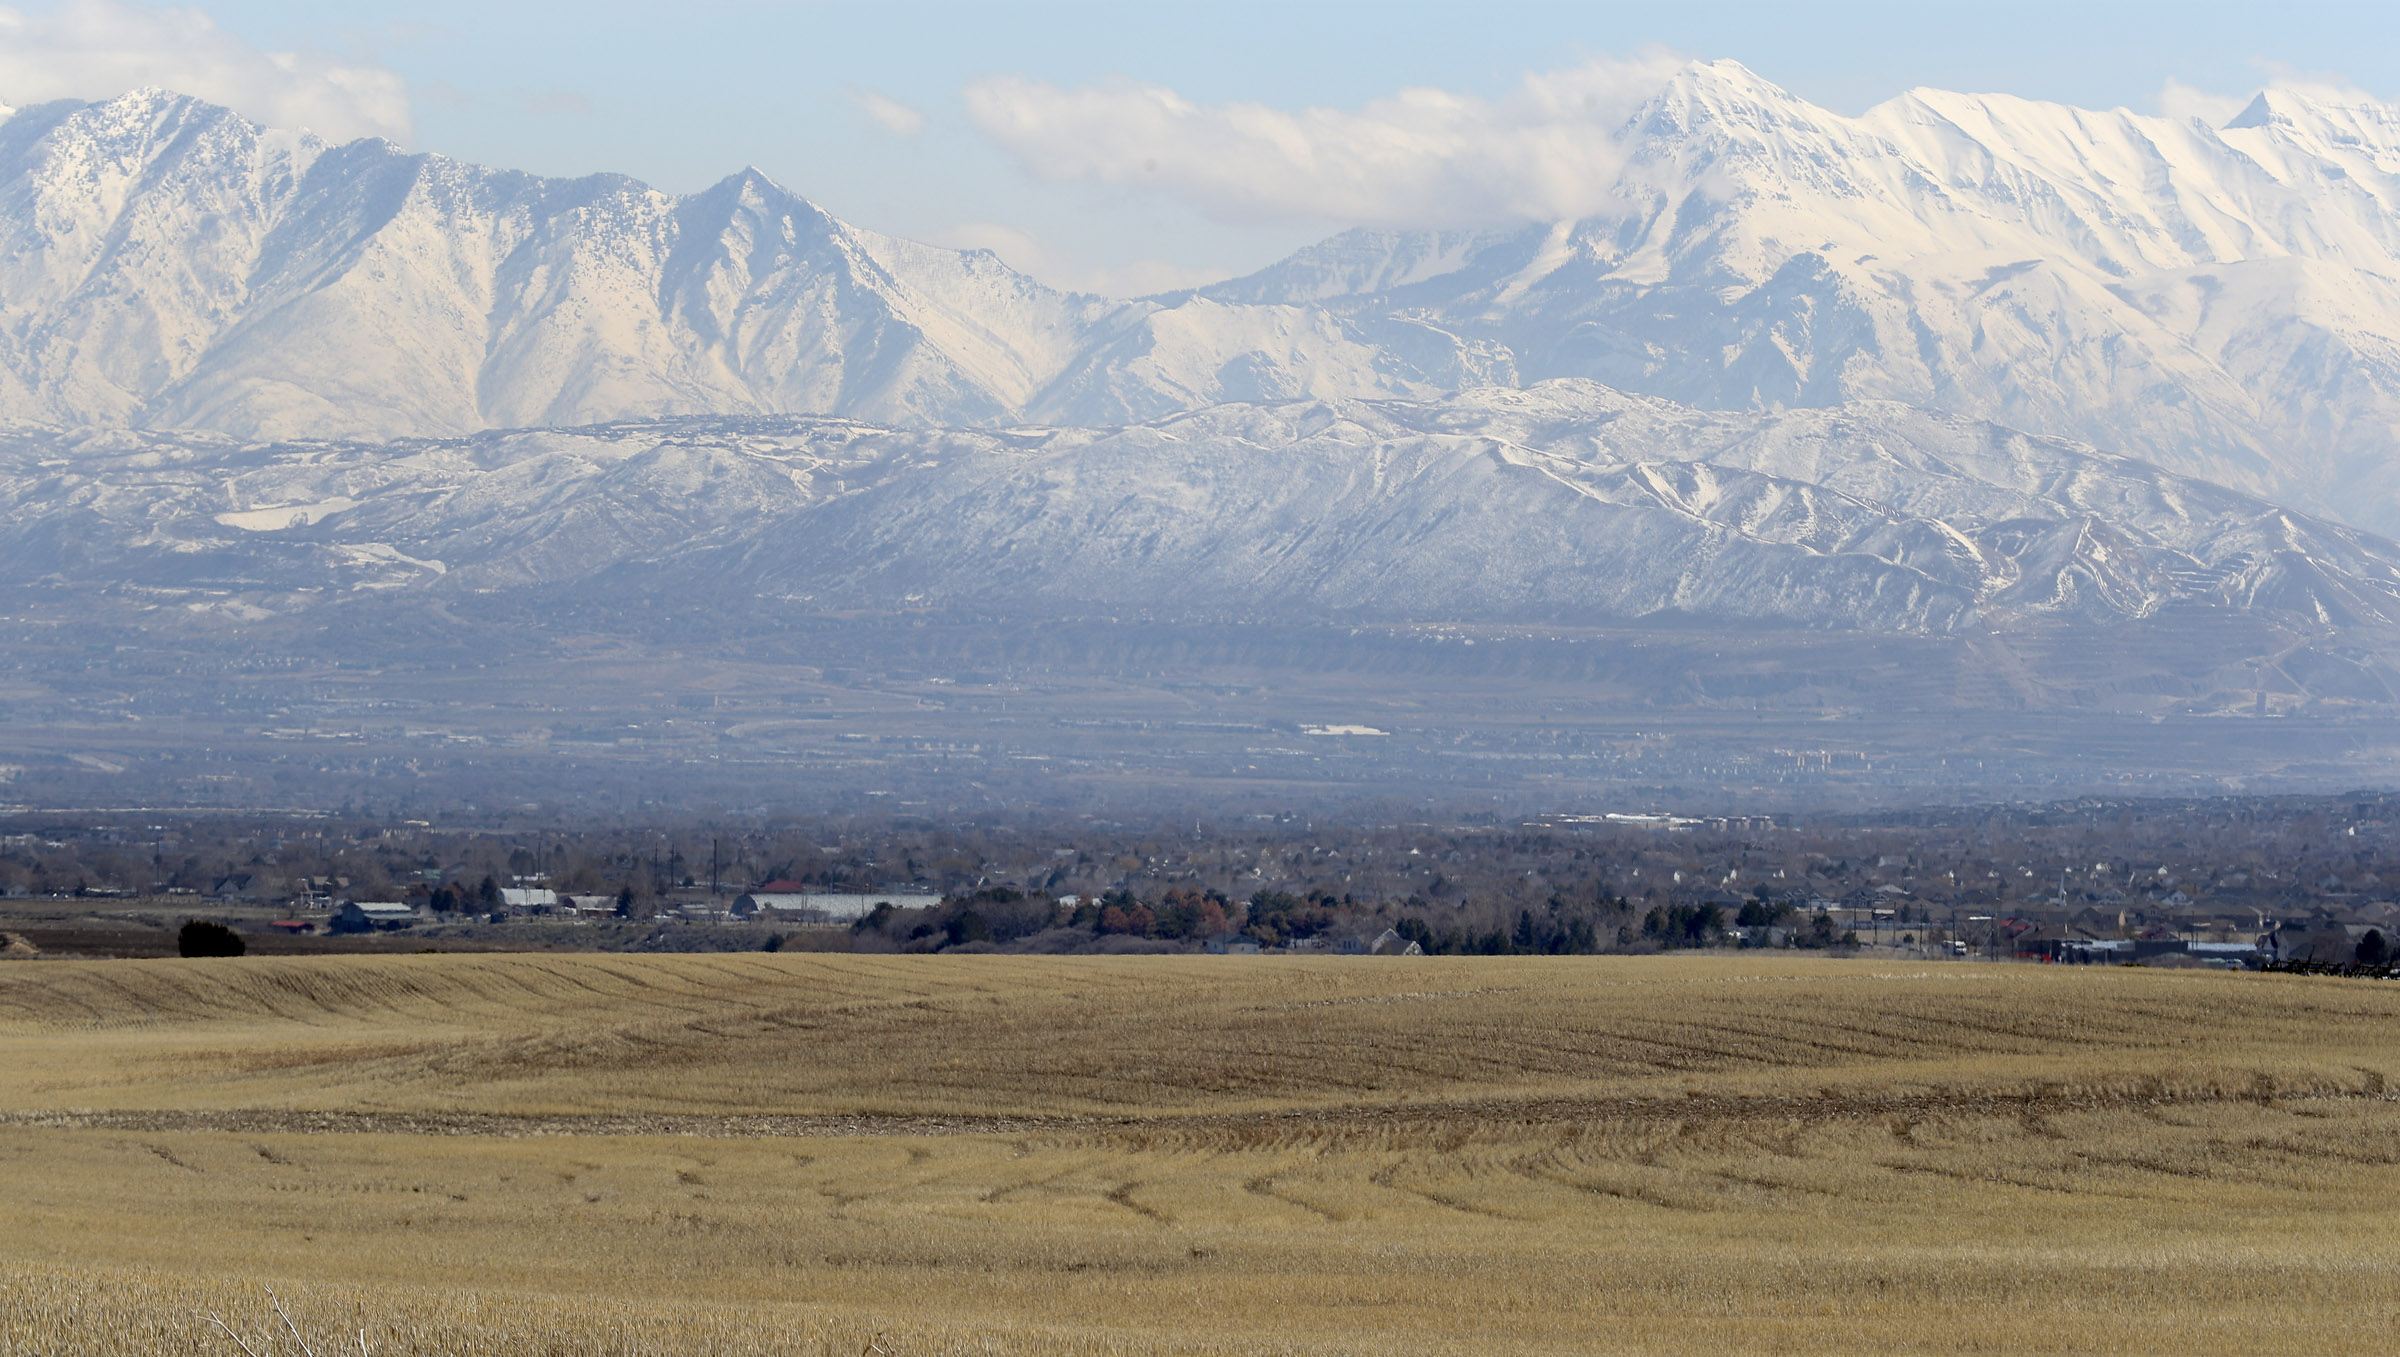 Land between 6300 West and 8500 West and 12400 South and 13100 South in unincorporated Salt Lake County is pictured.